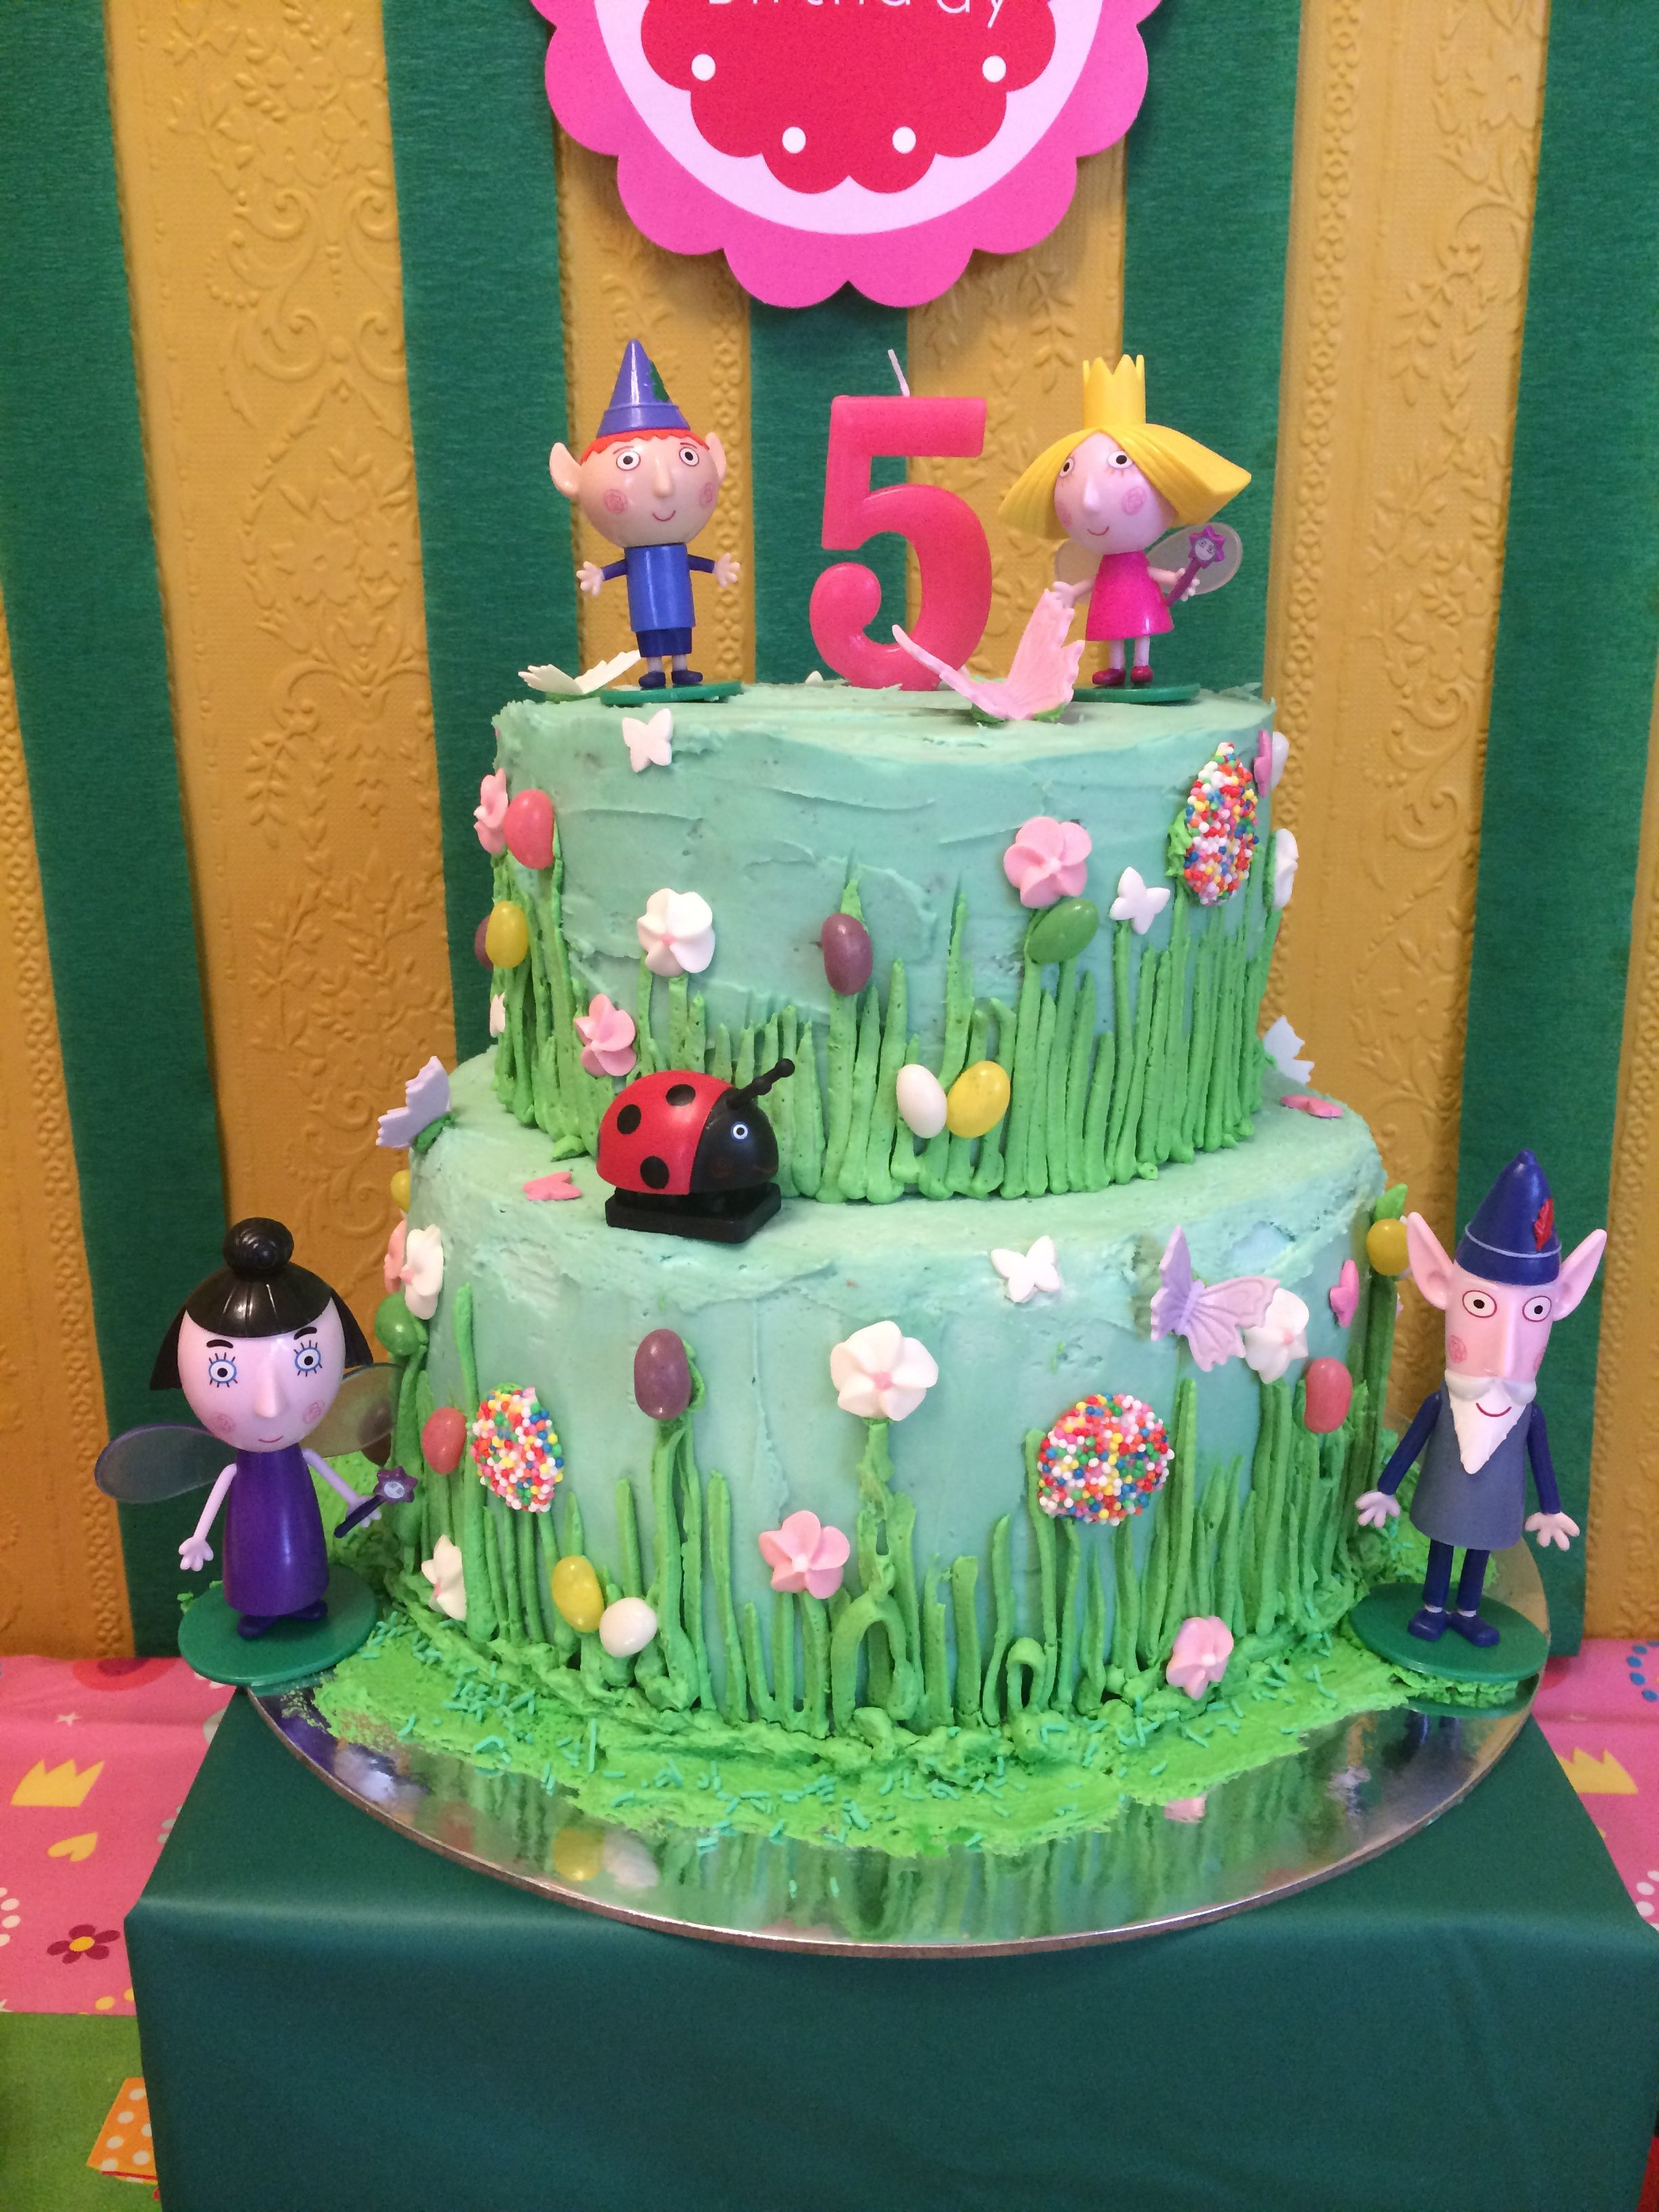 Ben and Holly buttercream cake with figurines | Natalia | Pinterest ...